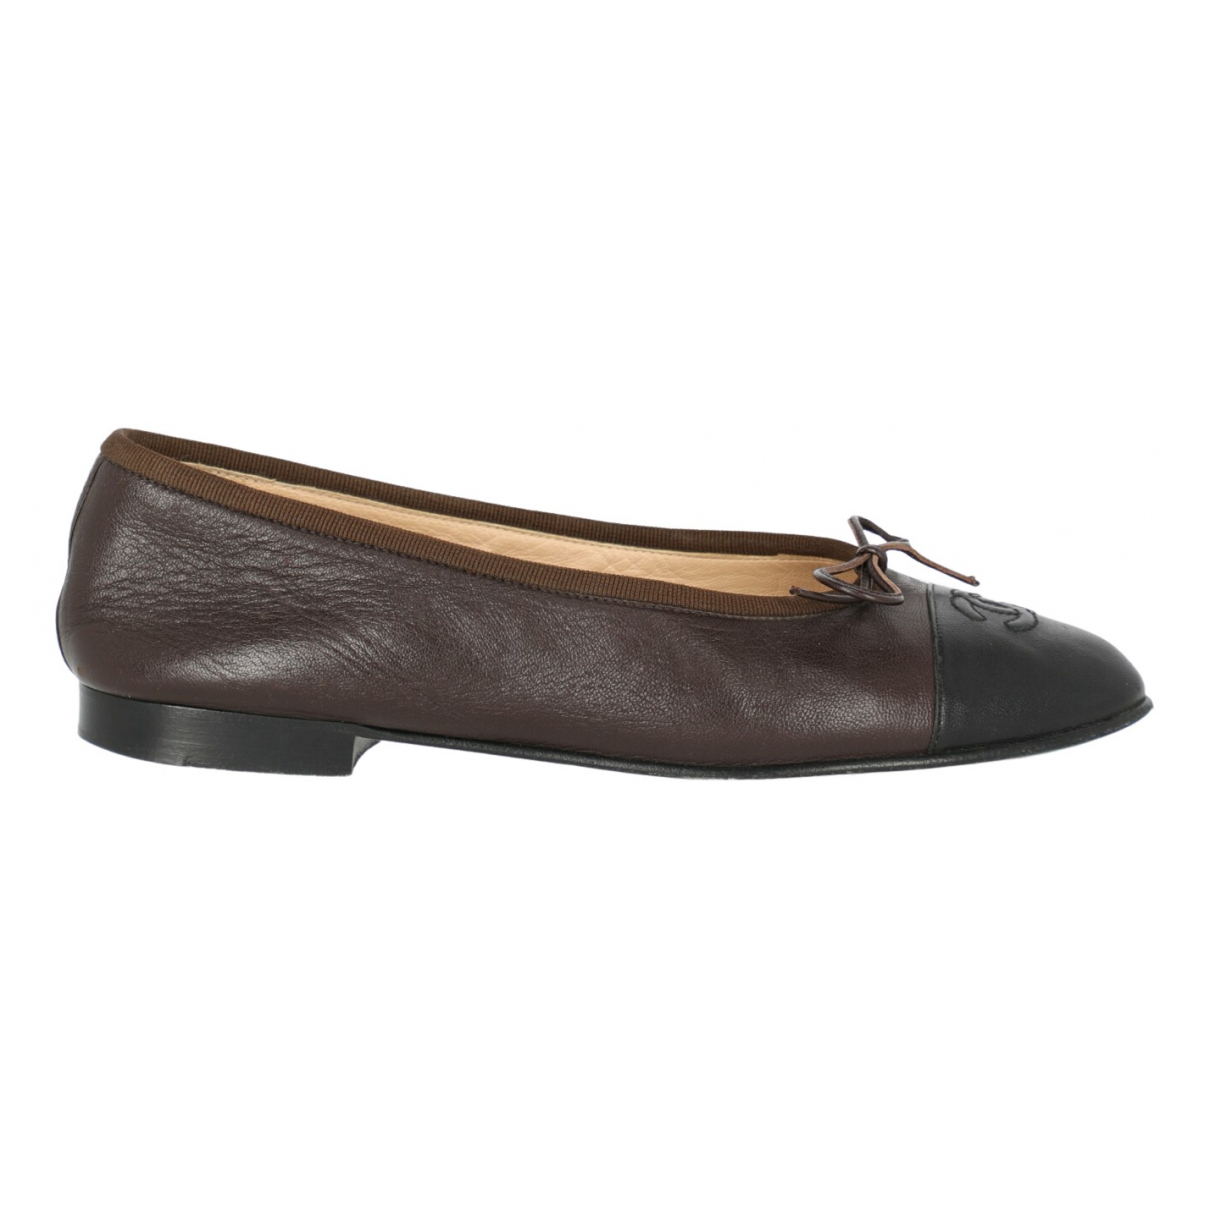 Chanel \N Black Leather Ballet flats for Women 37.5 IT